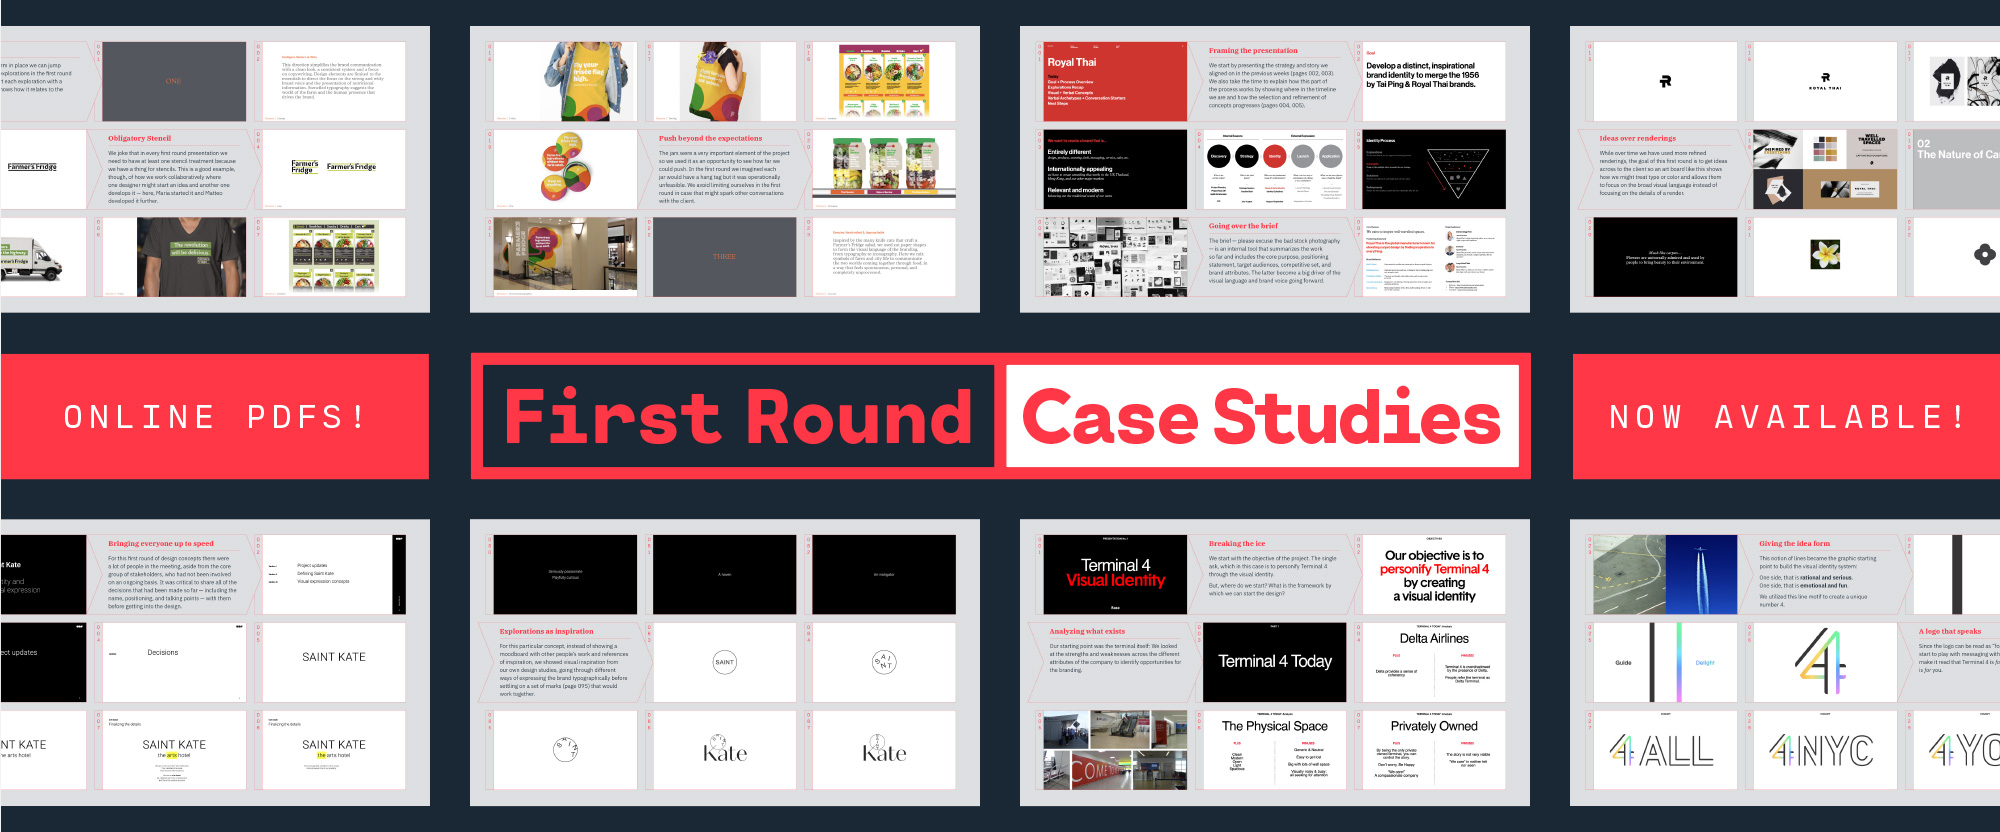 Introducing First Round Case Studies